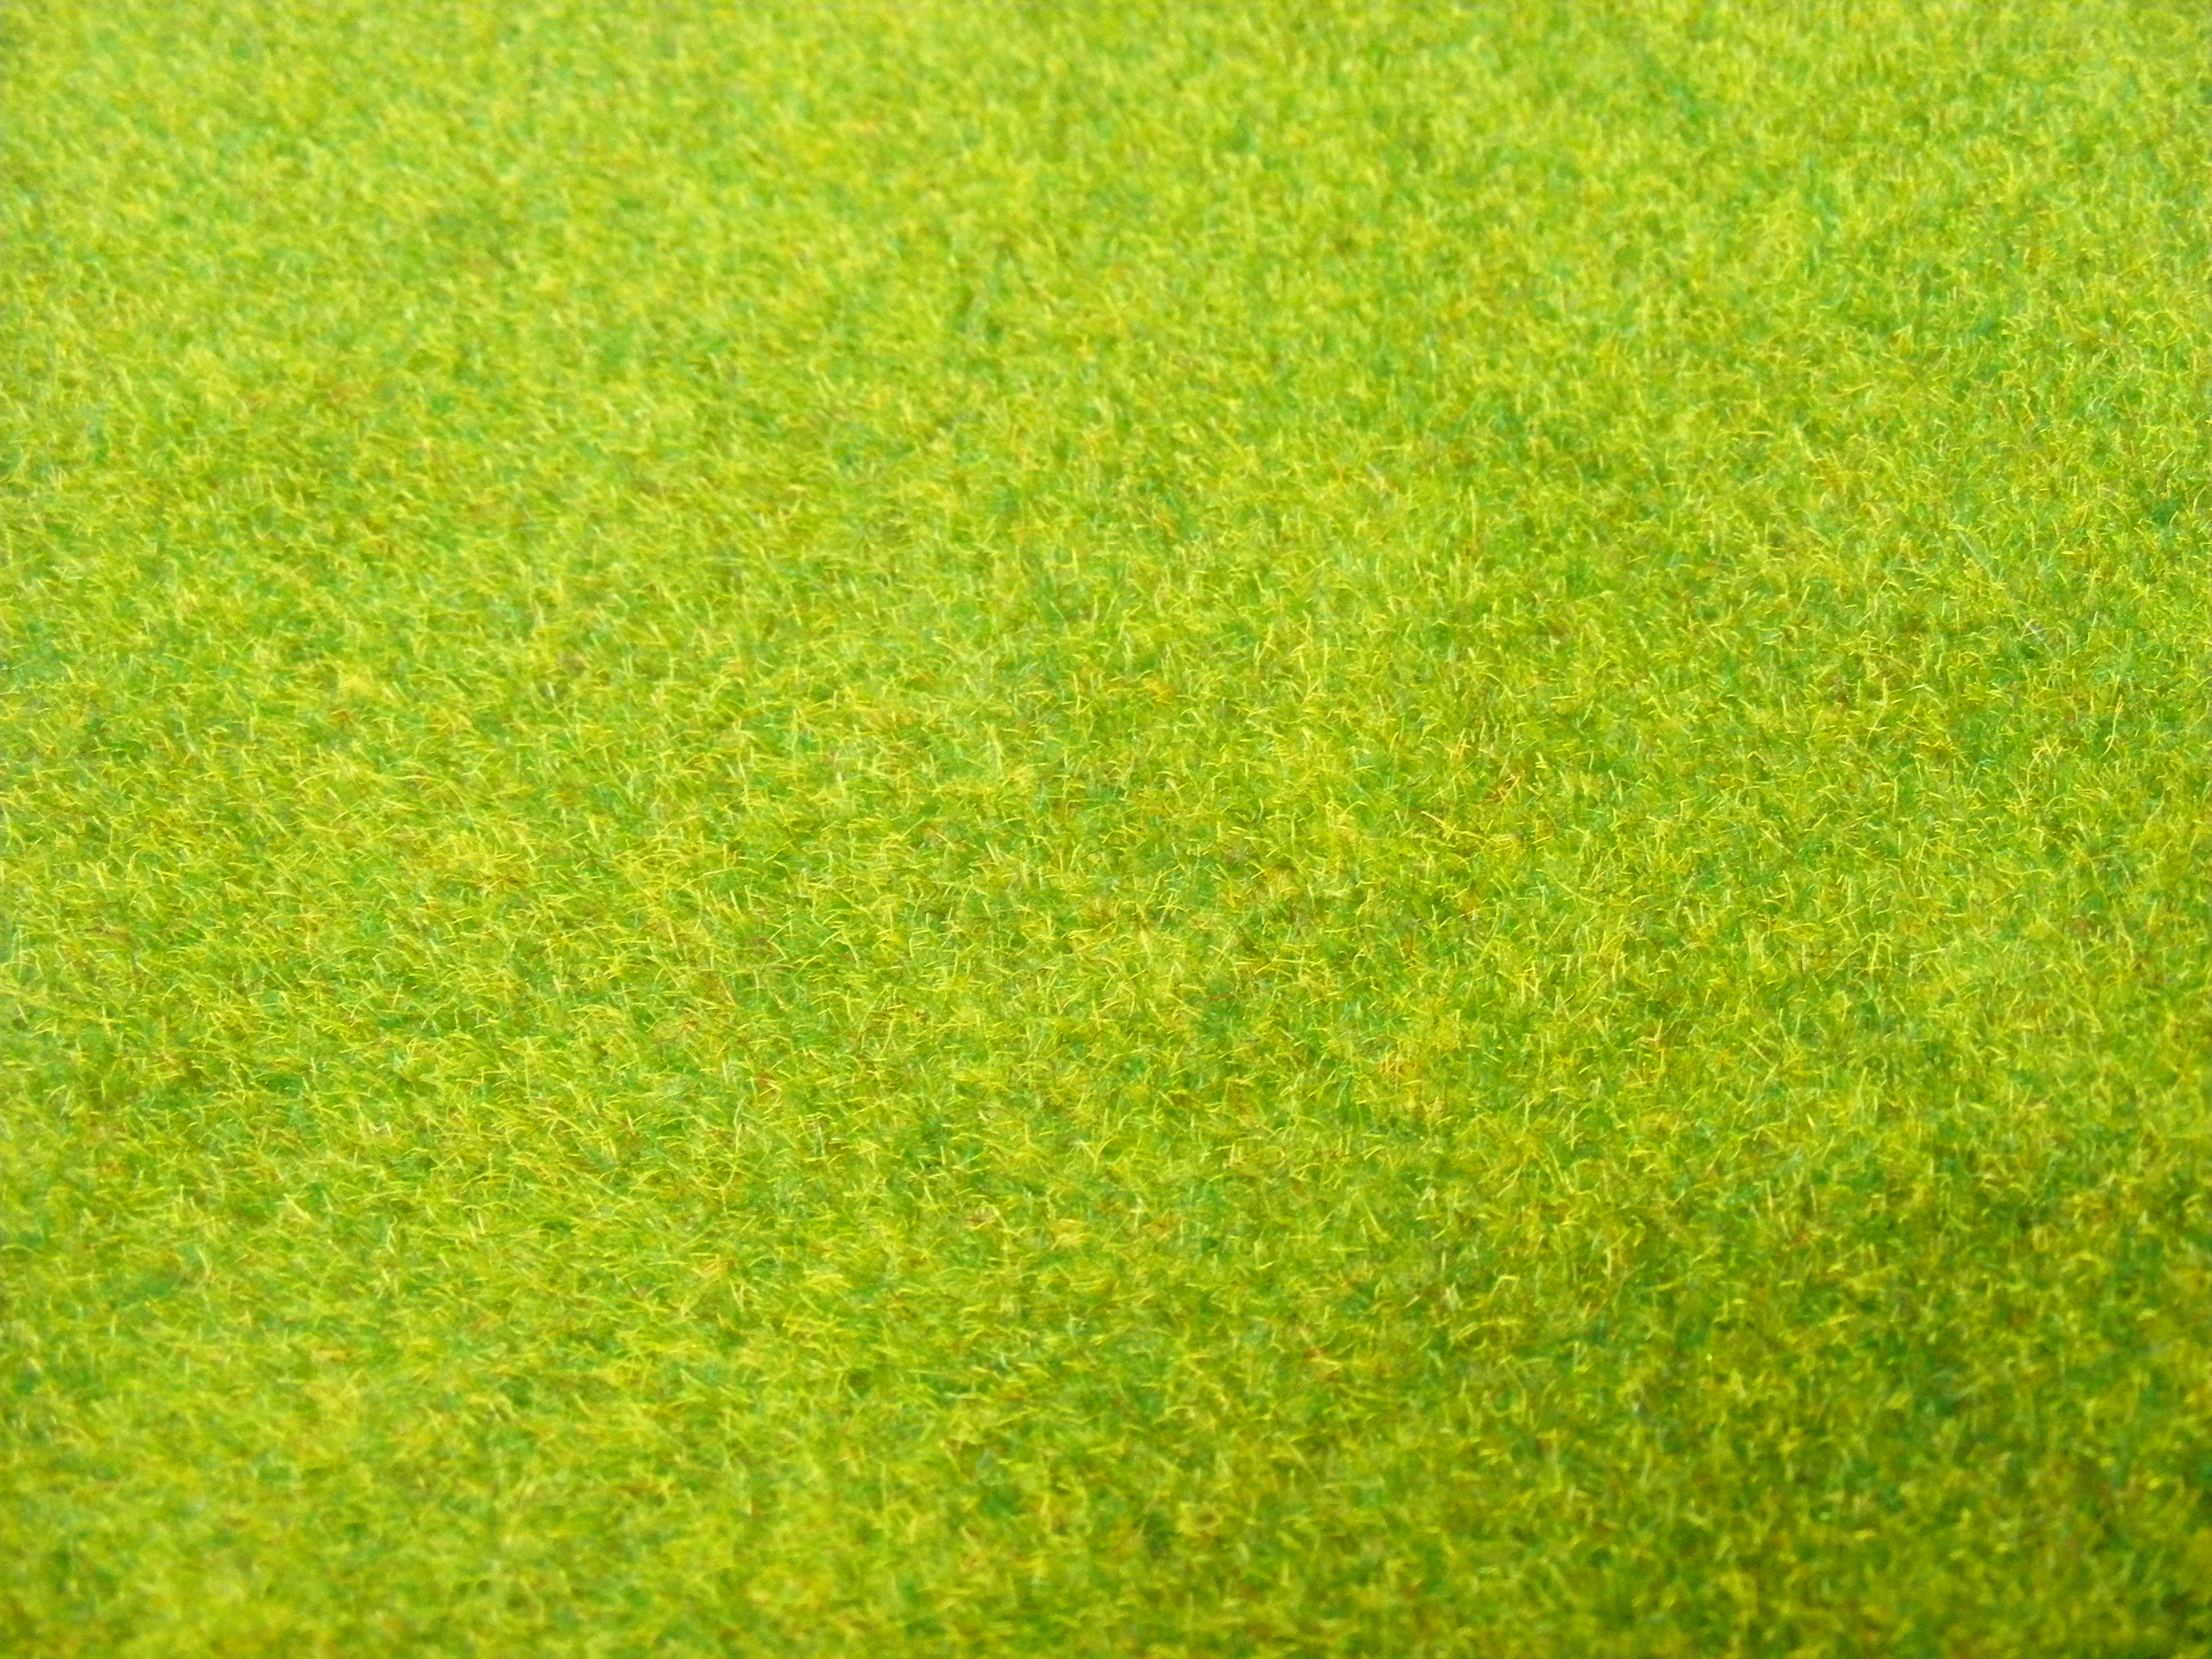 grass background texture - photo #15